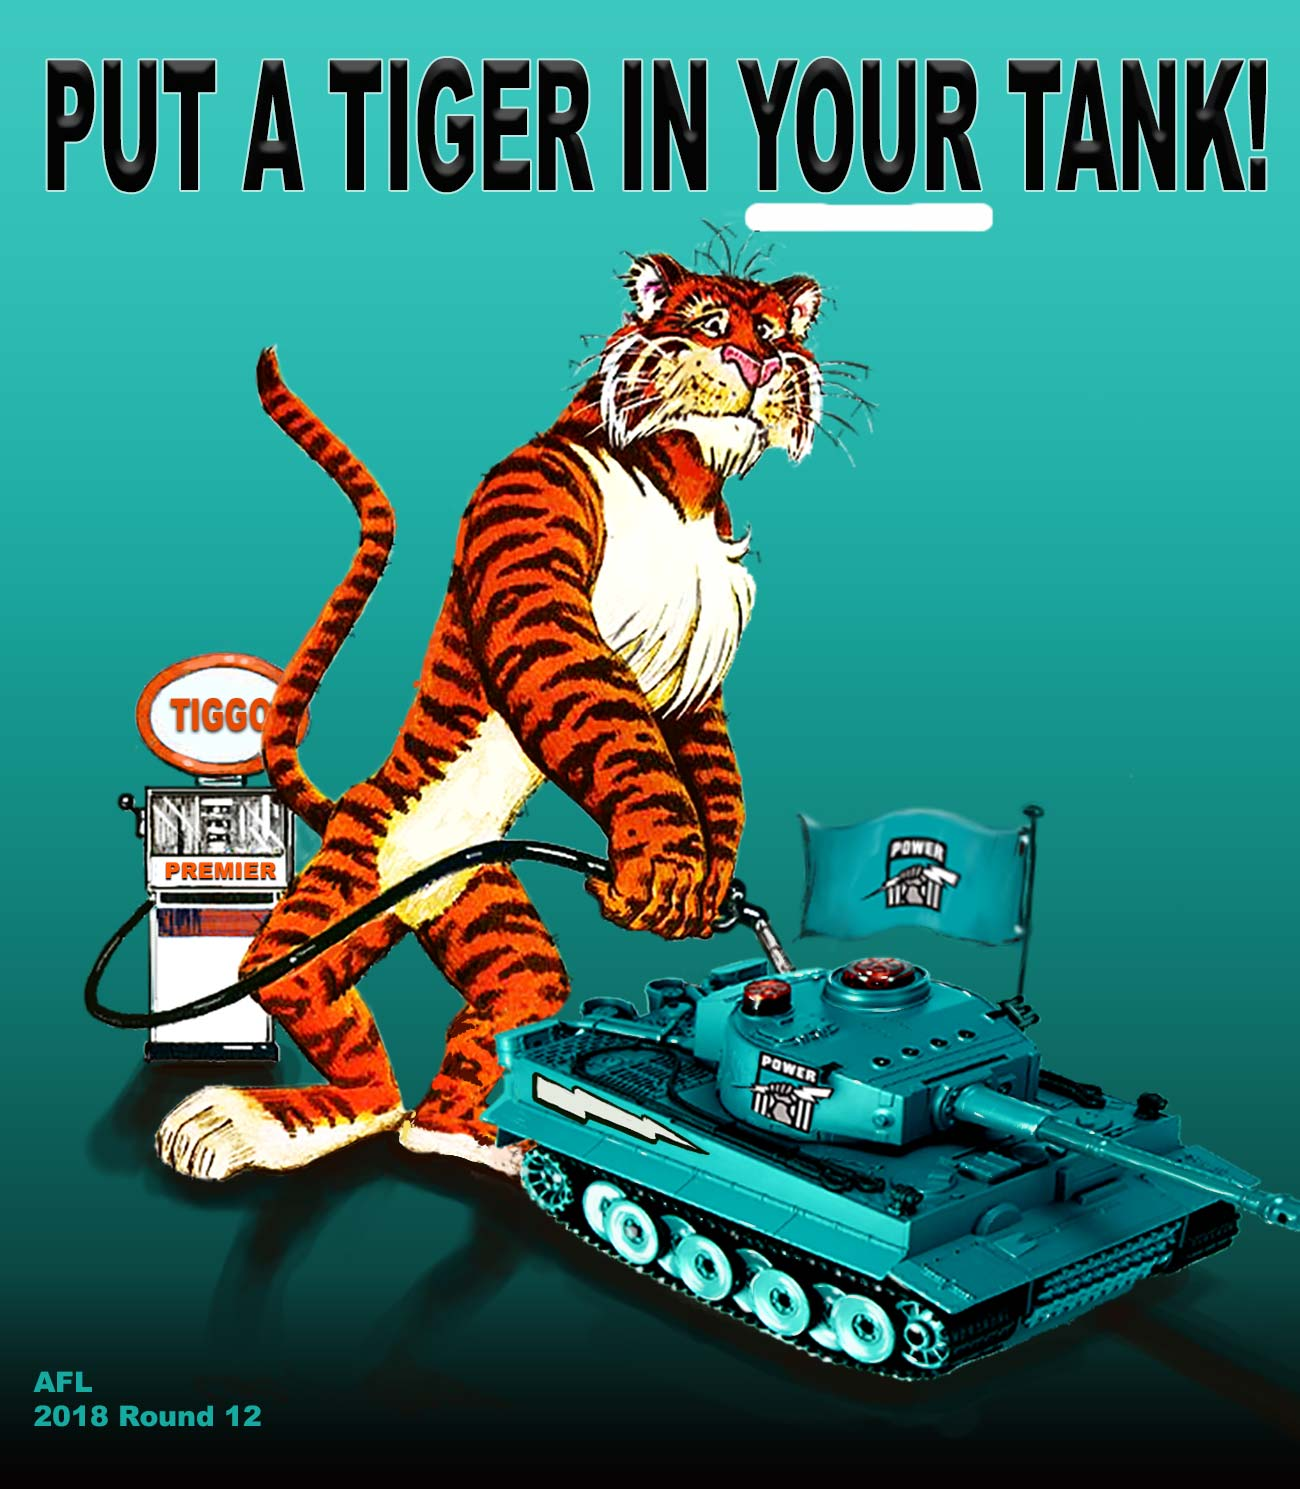 2018-Rd-12-Tiger-In-Your-Tank.jpg